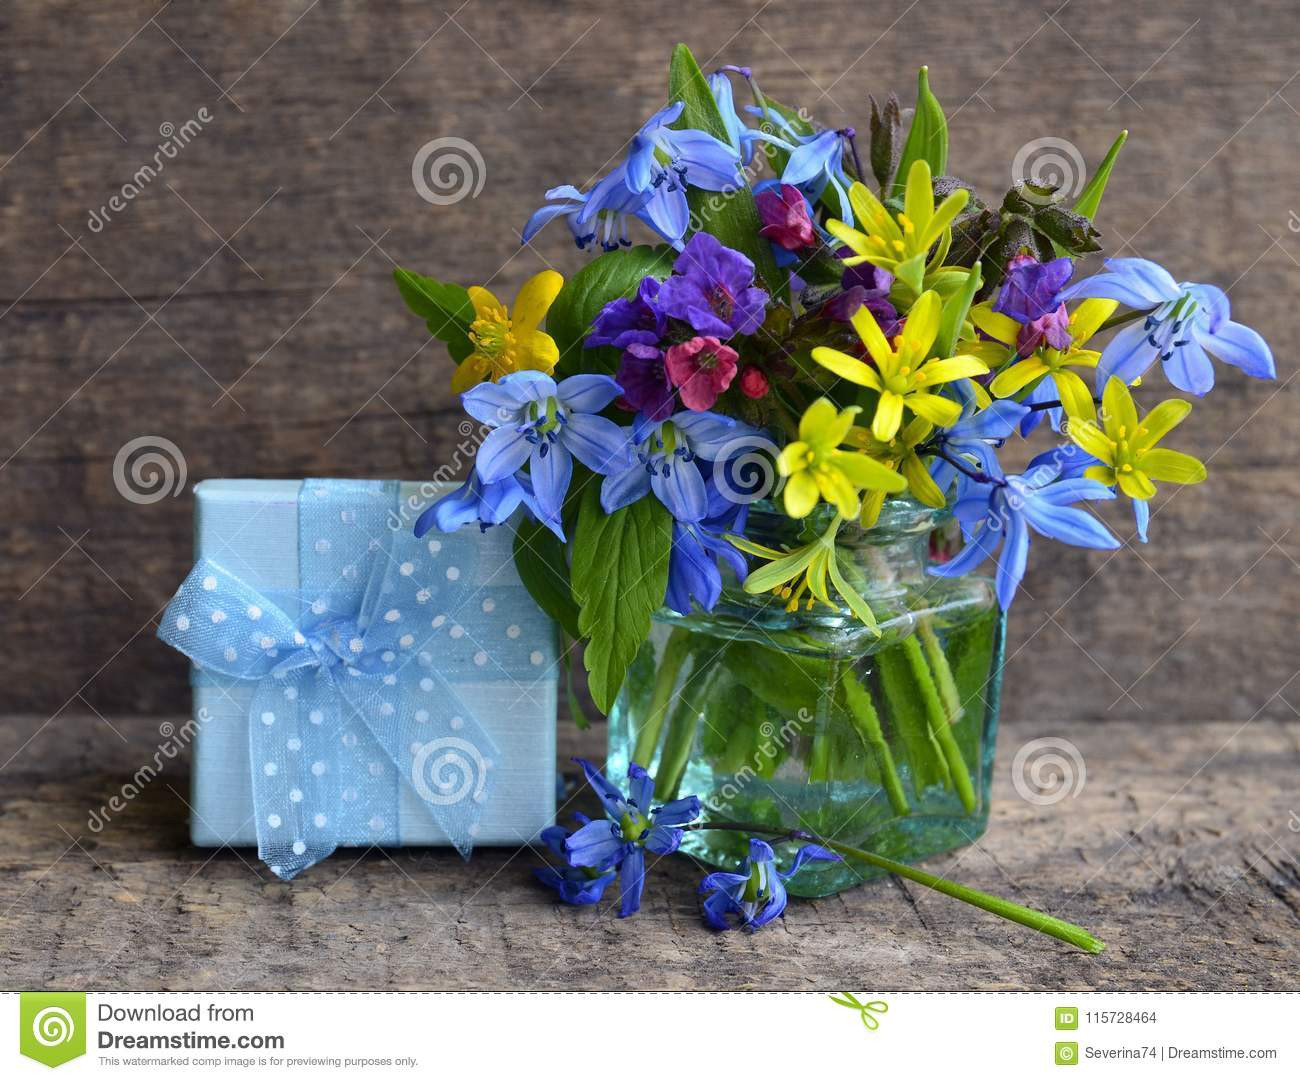 18 Trendy Vintage Colored Glass Vases 2021 free download vintage colored glass vases of bright spring flowers bouquet in a glass vase and gift box on old with bright spring flowers bouquet in a glass vase and gift box on old wooden background